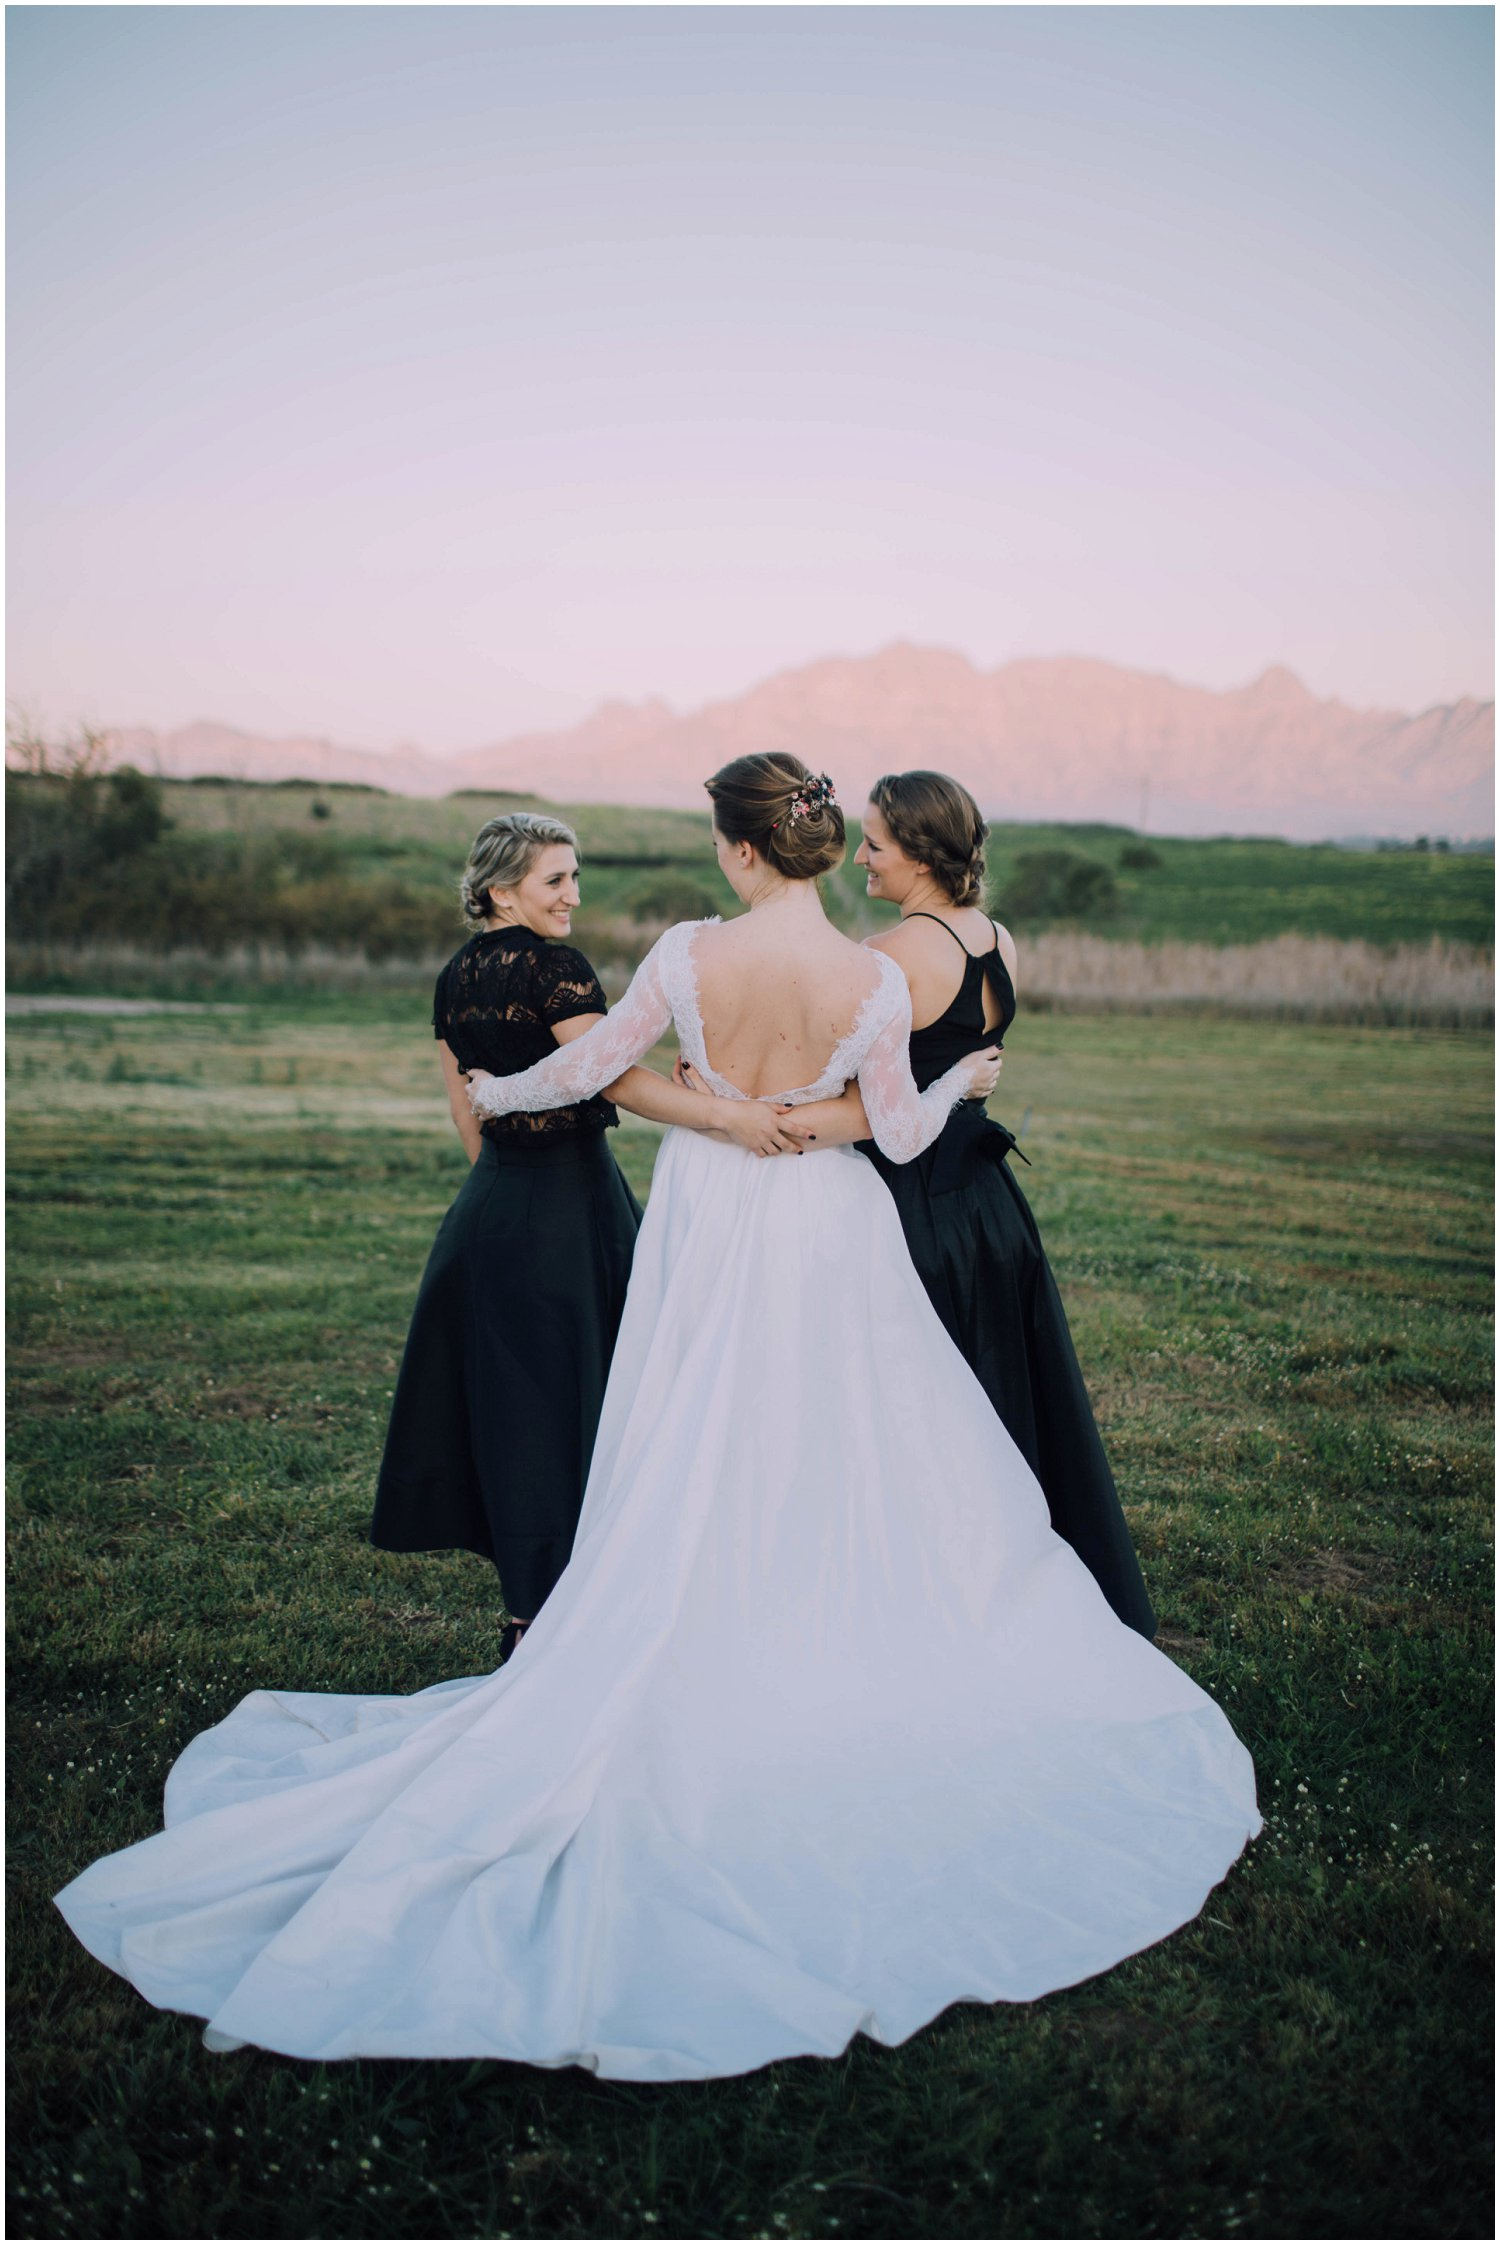 Top Wedding Photographer Cape Town South Africa Artistic Creative Documentary Wedding Photography Rue Kruger_1239.jpg